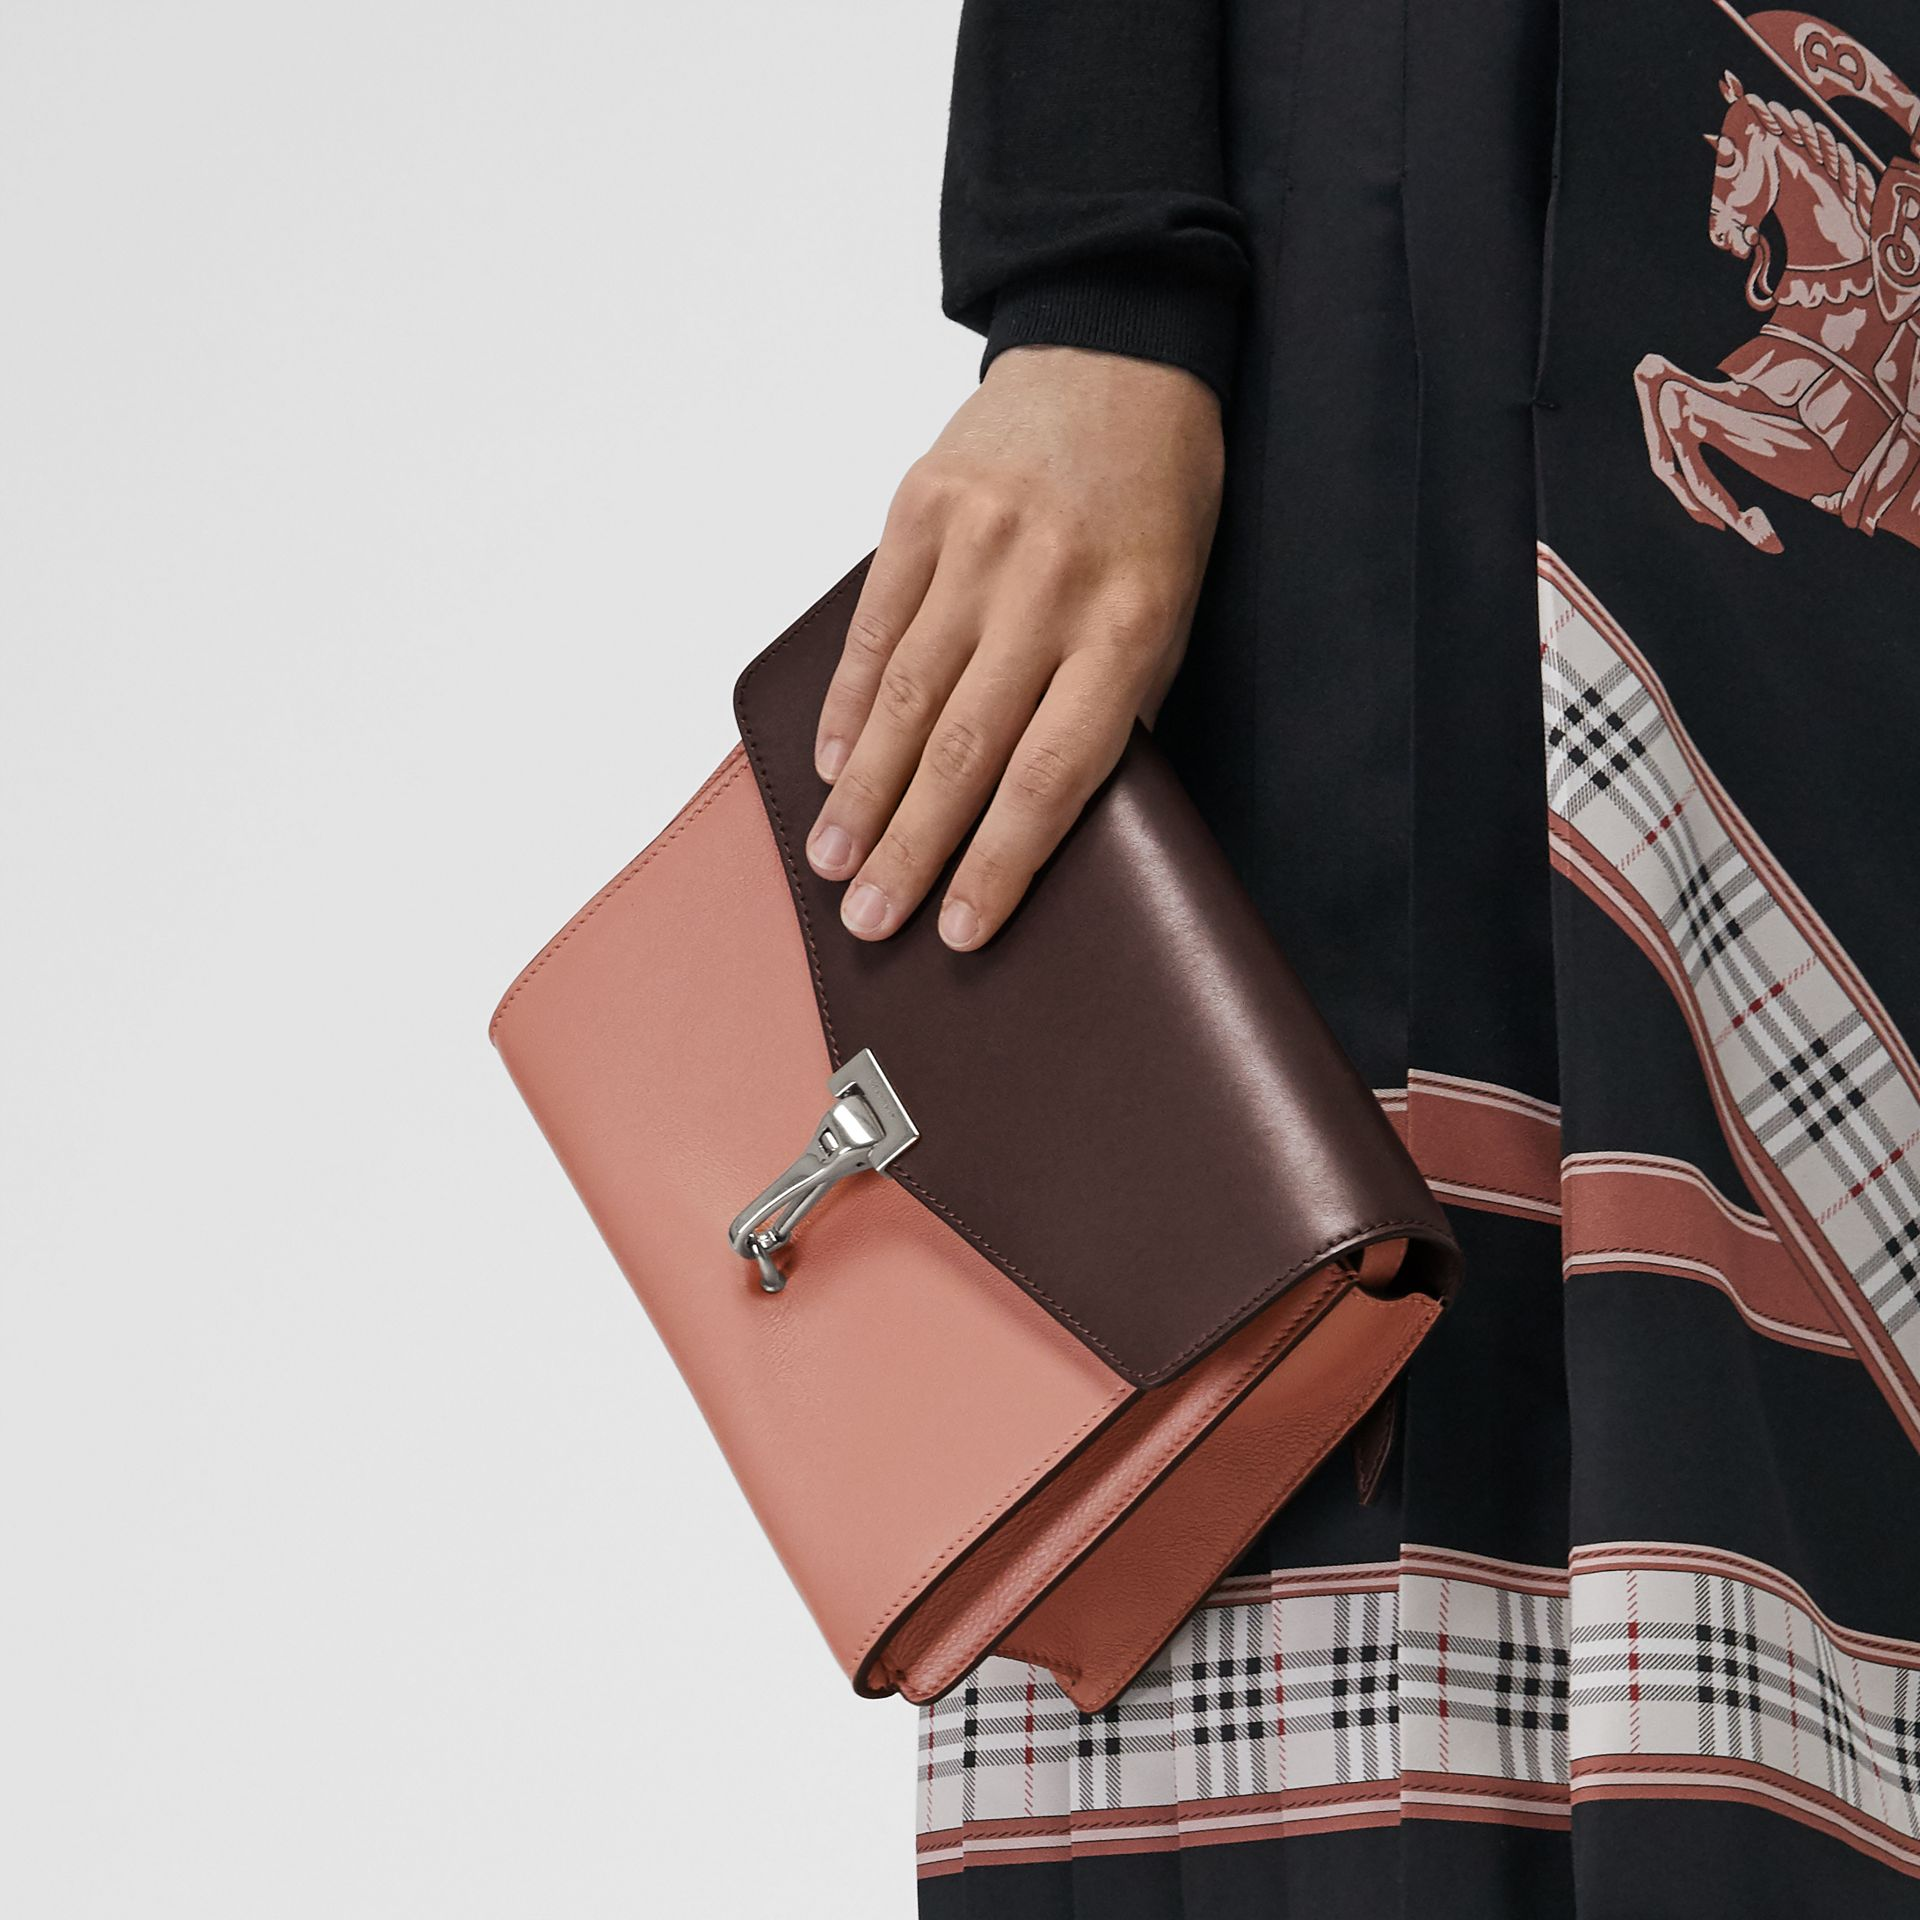 Two-tone Leather Crossbody Bag in Dusty Rose/deep Claret - Women | Burberry United Kingdom - gallery image 2